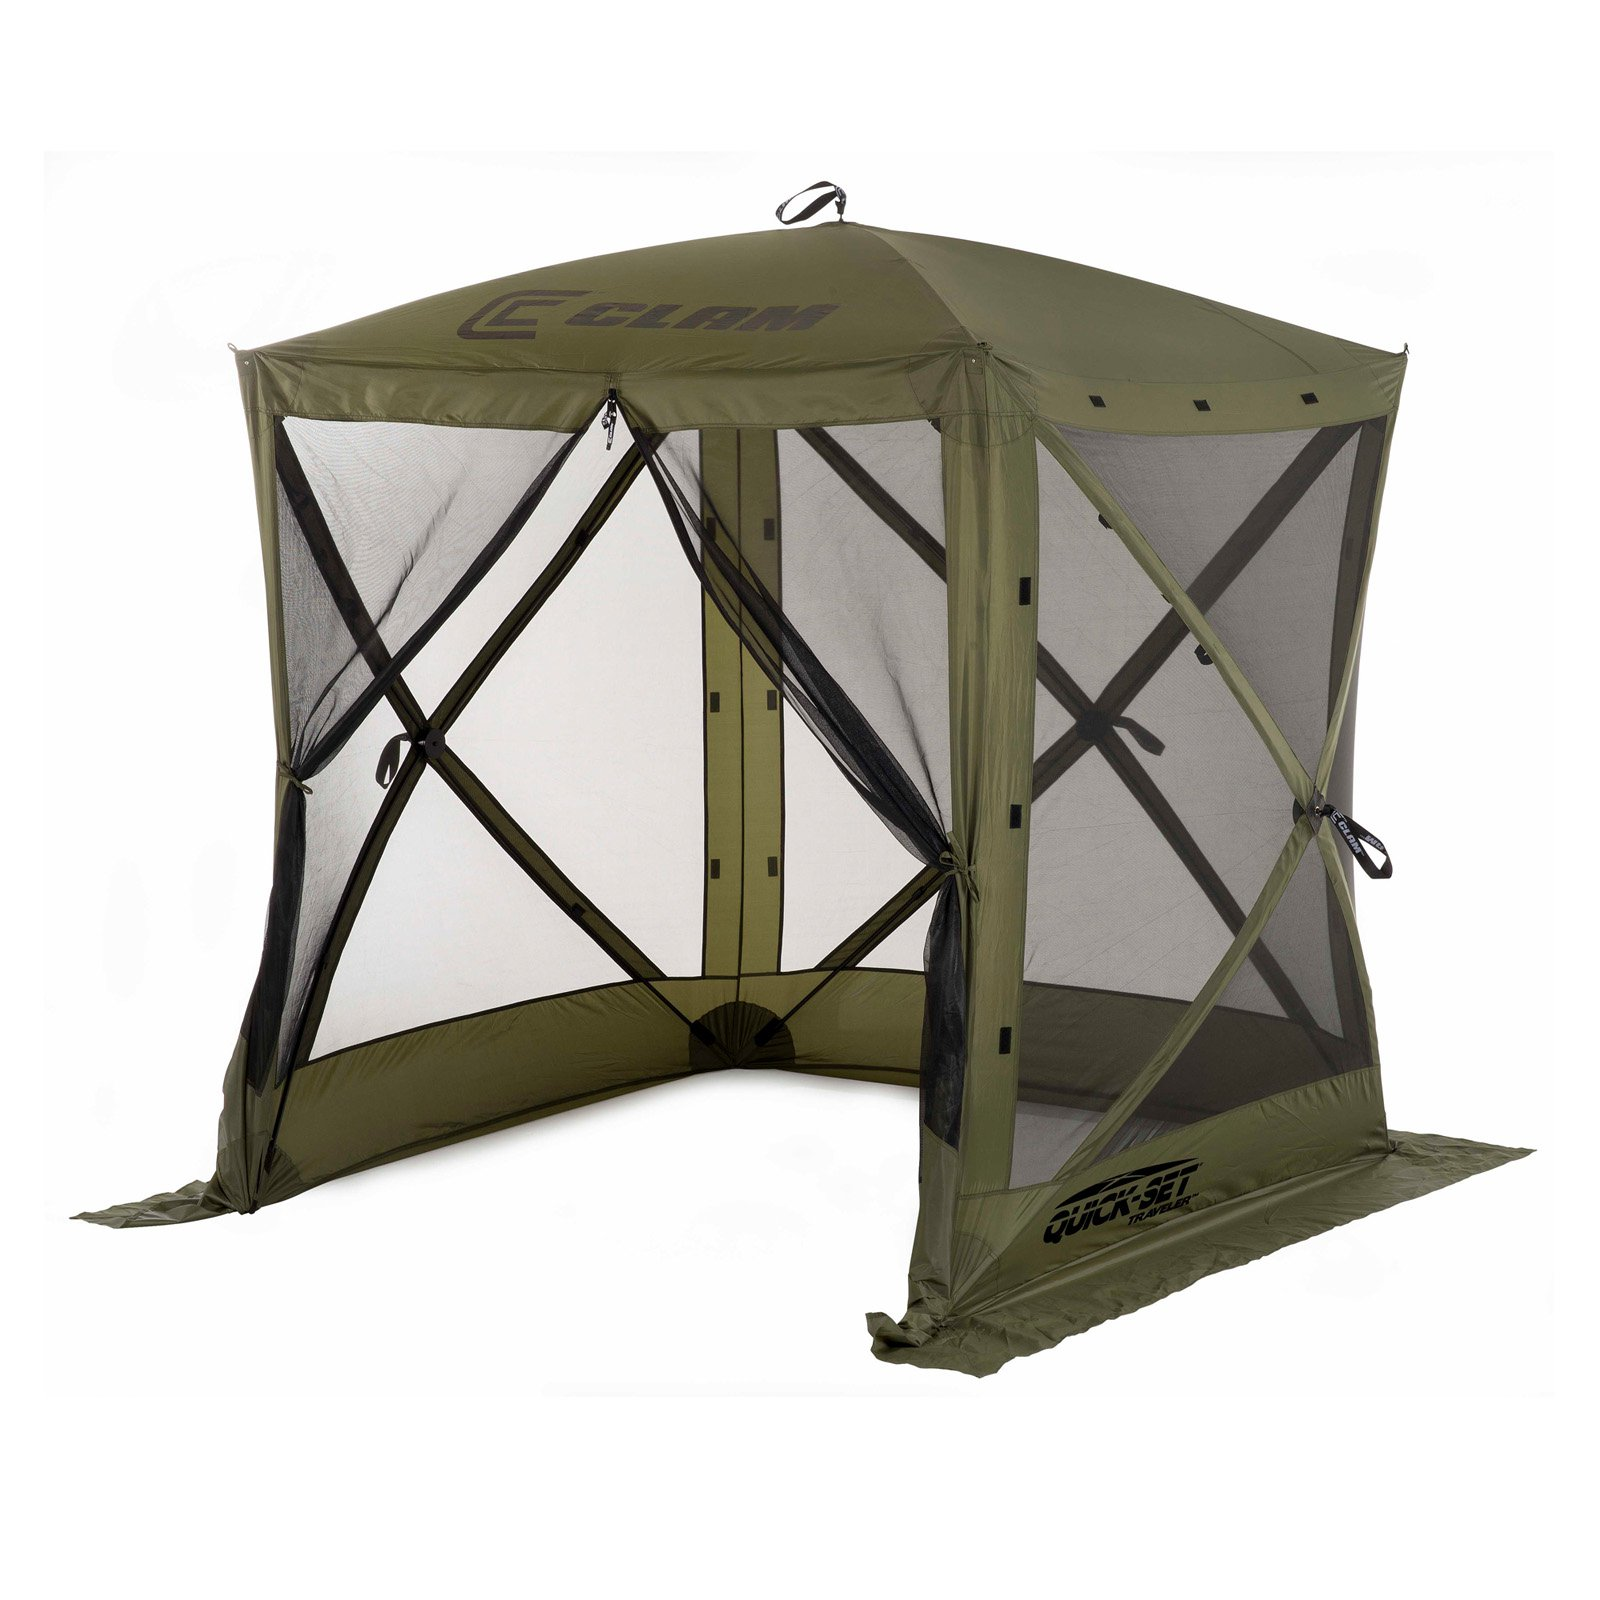 Clam 6 x 6 ft. Quick-Set Traveler Canopy Shelter  sc 1 st  Walmart & Clam 6 x 6 ft. Quick-Set Traveler Canopy Shelter - Walmart.com